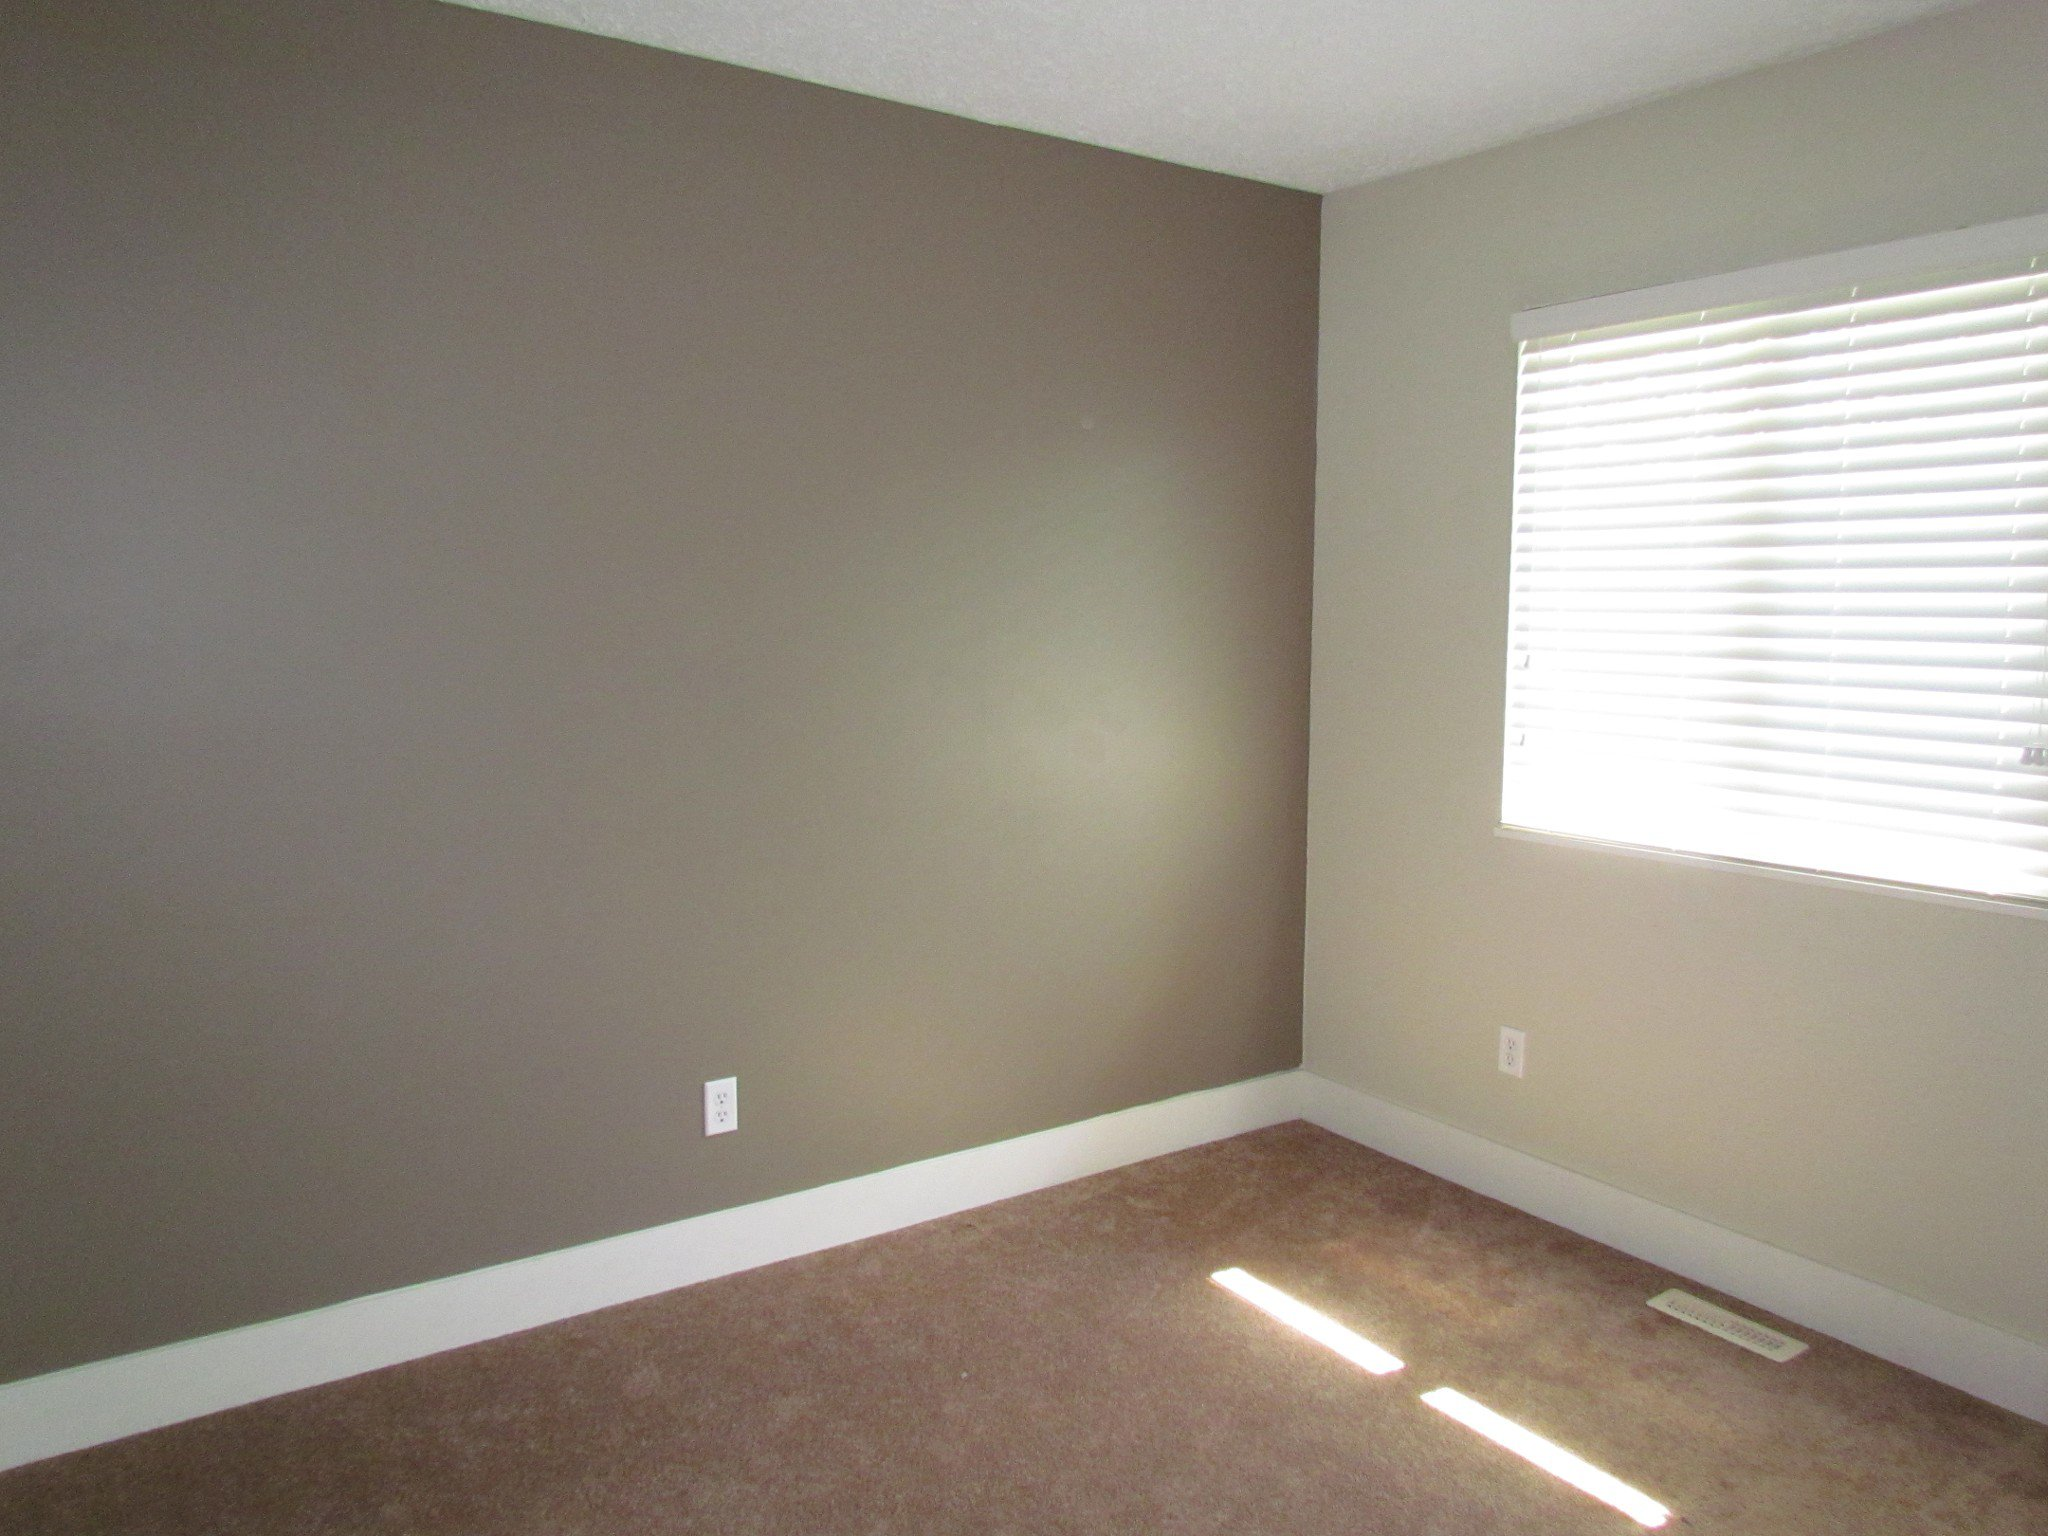 Photo 8: Photos: 3465 Juniper Cr. in Abbotsford: Abbotsford East House for rent